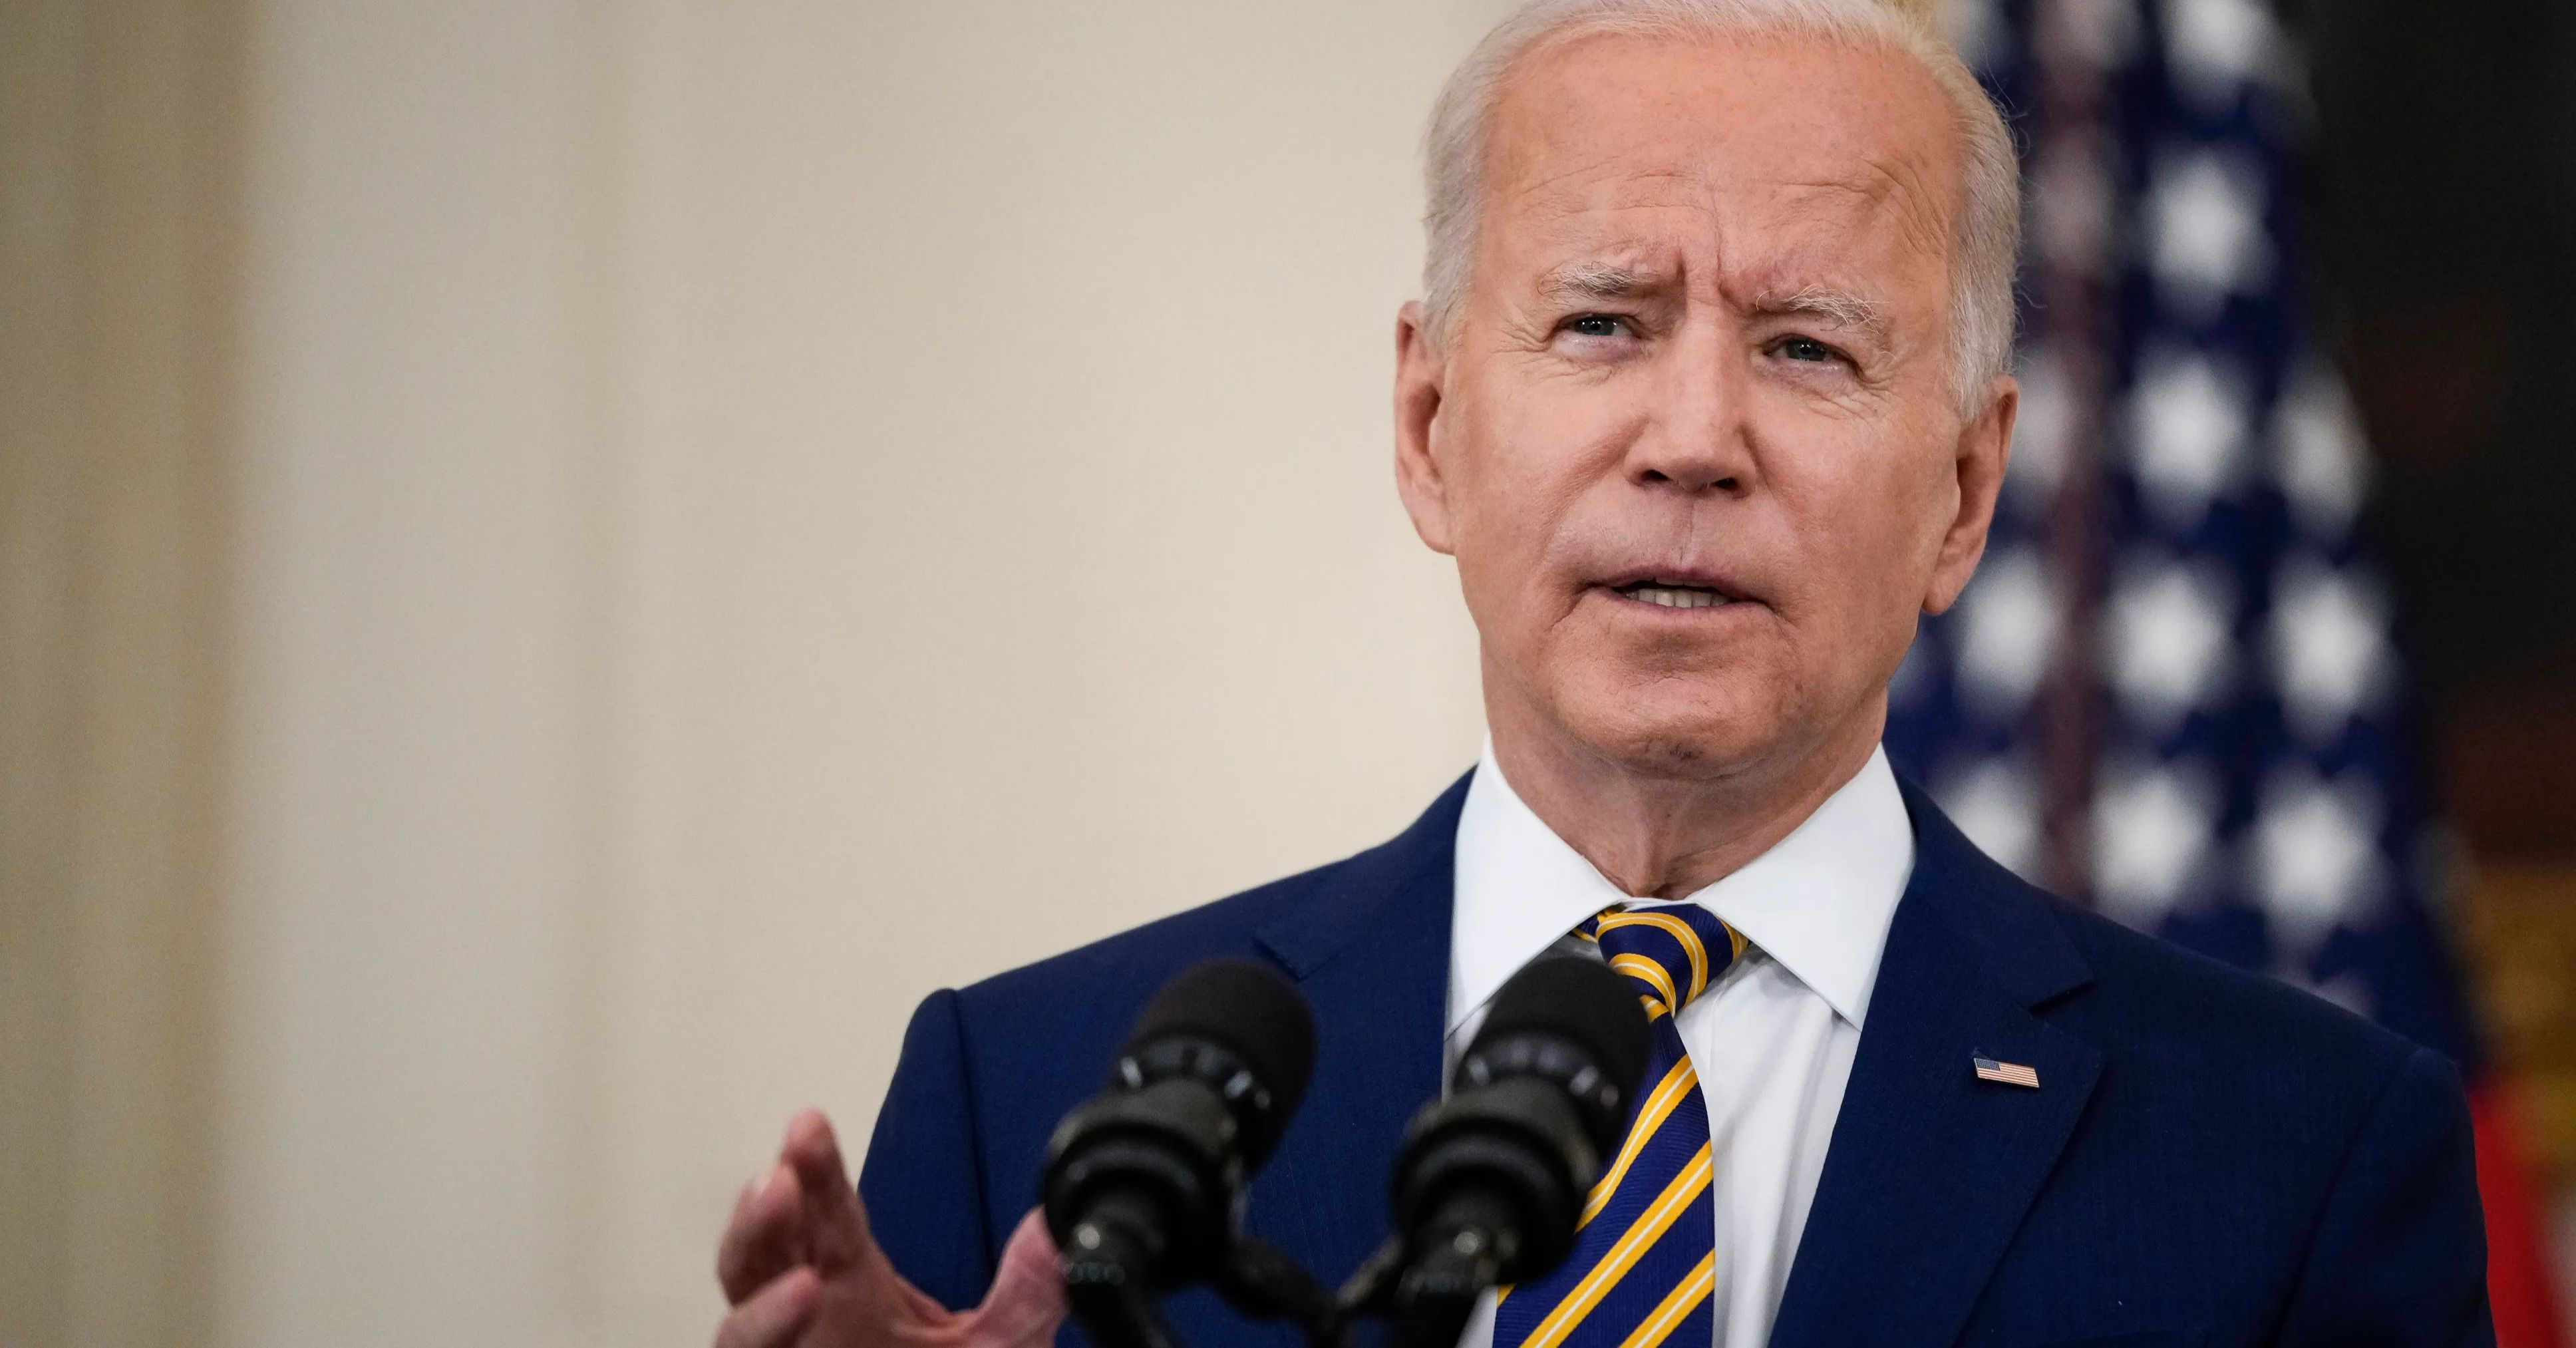 Joe Biden Will Resign Or Face The 25th Amendment, Ex-White House Doctor Says